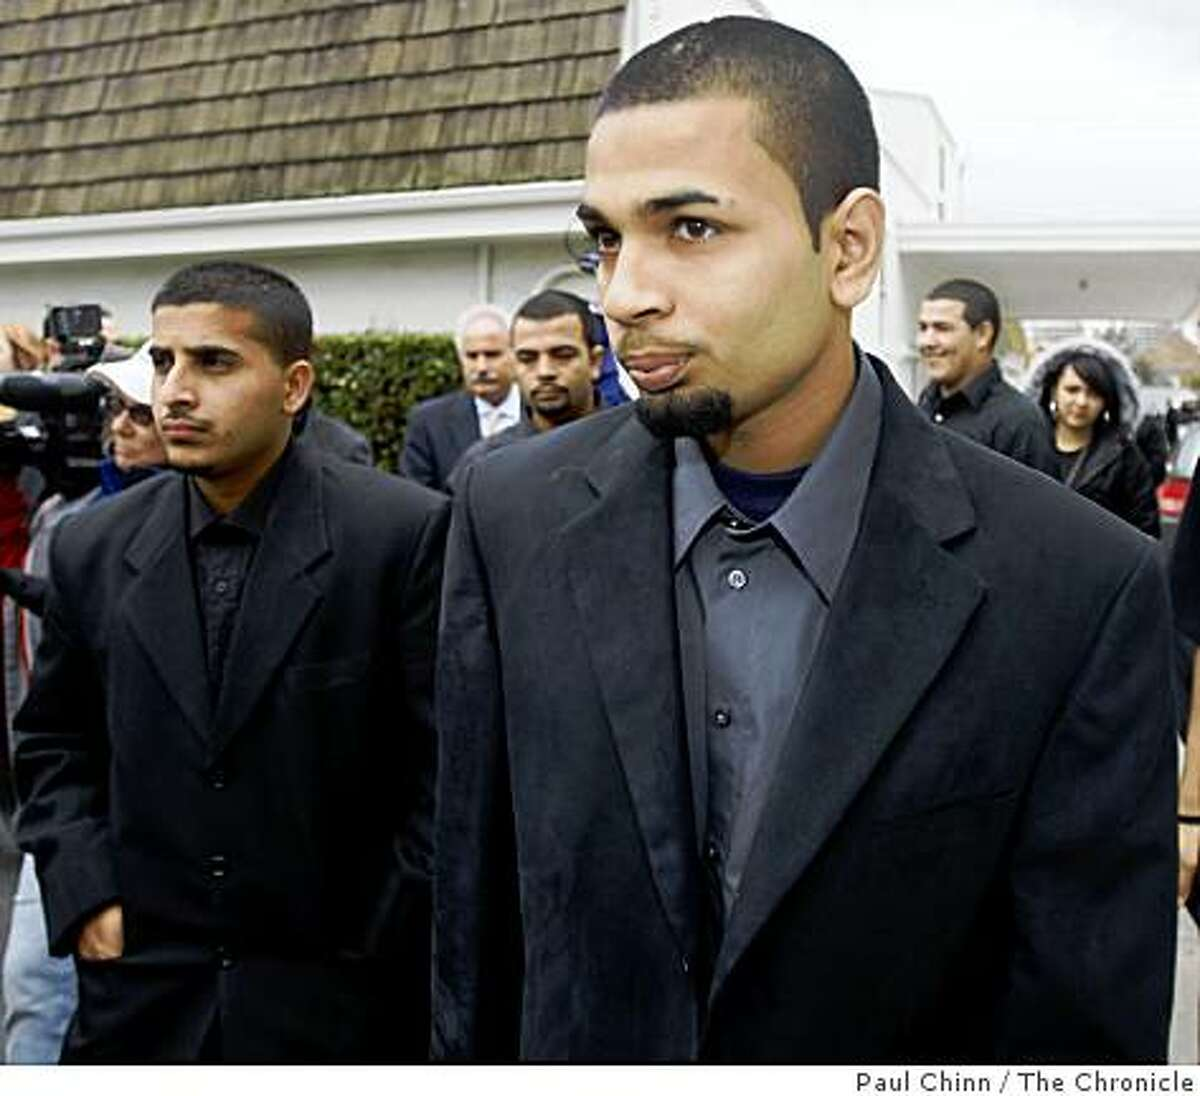 Paul Dhaliwal (right) one of the two brothers injured in the tiger attack, leaves the funeral service for 17-year-old Carlos Sousa, Jr. in San Jose, Calif. on Tuesday, Jan. 8, 2008. Sousa was killed in the Christmas Day tiger attack at the San Francisco Zoo